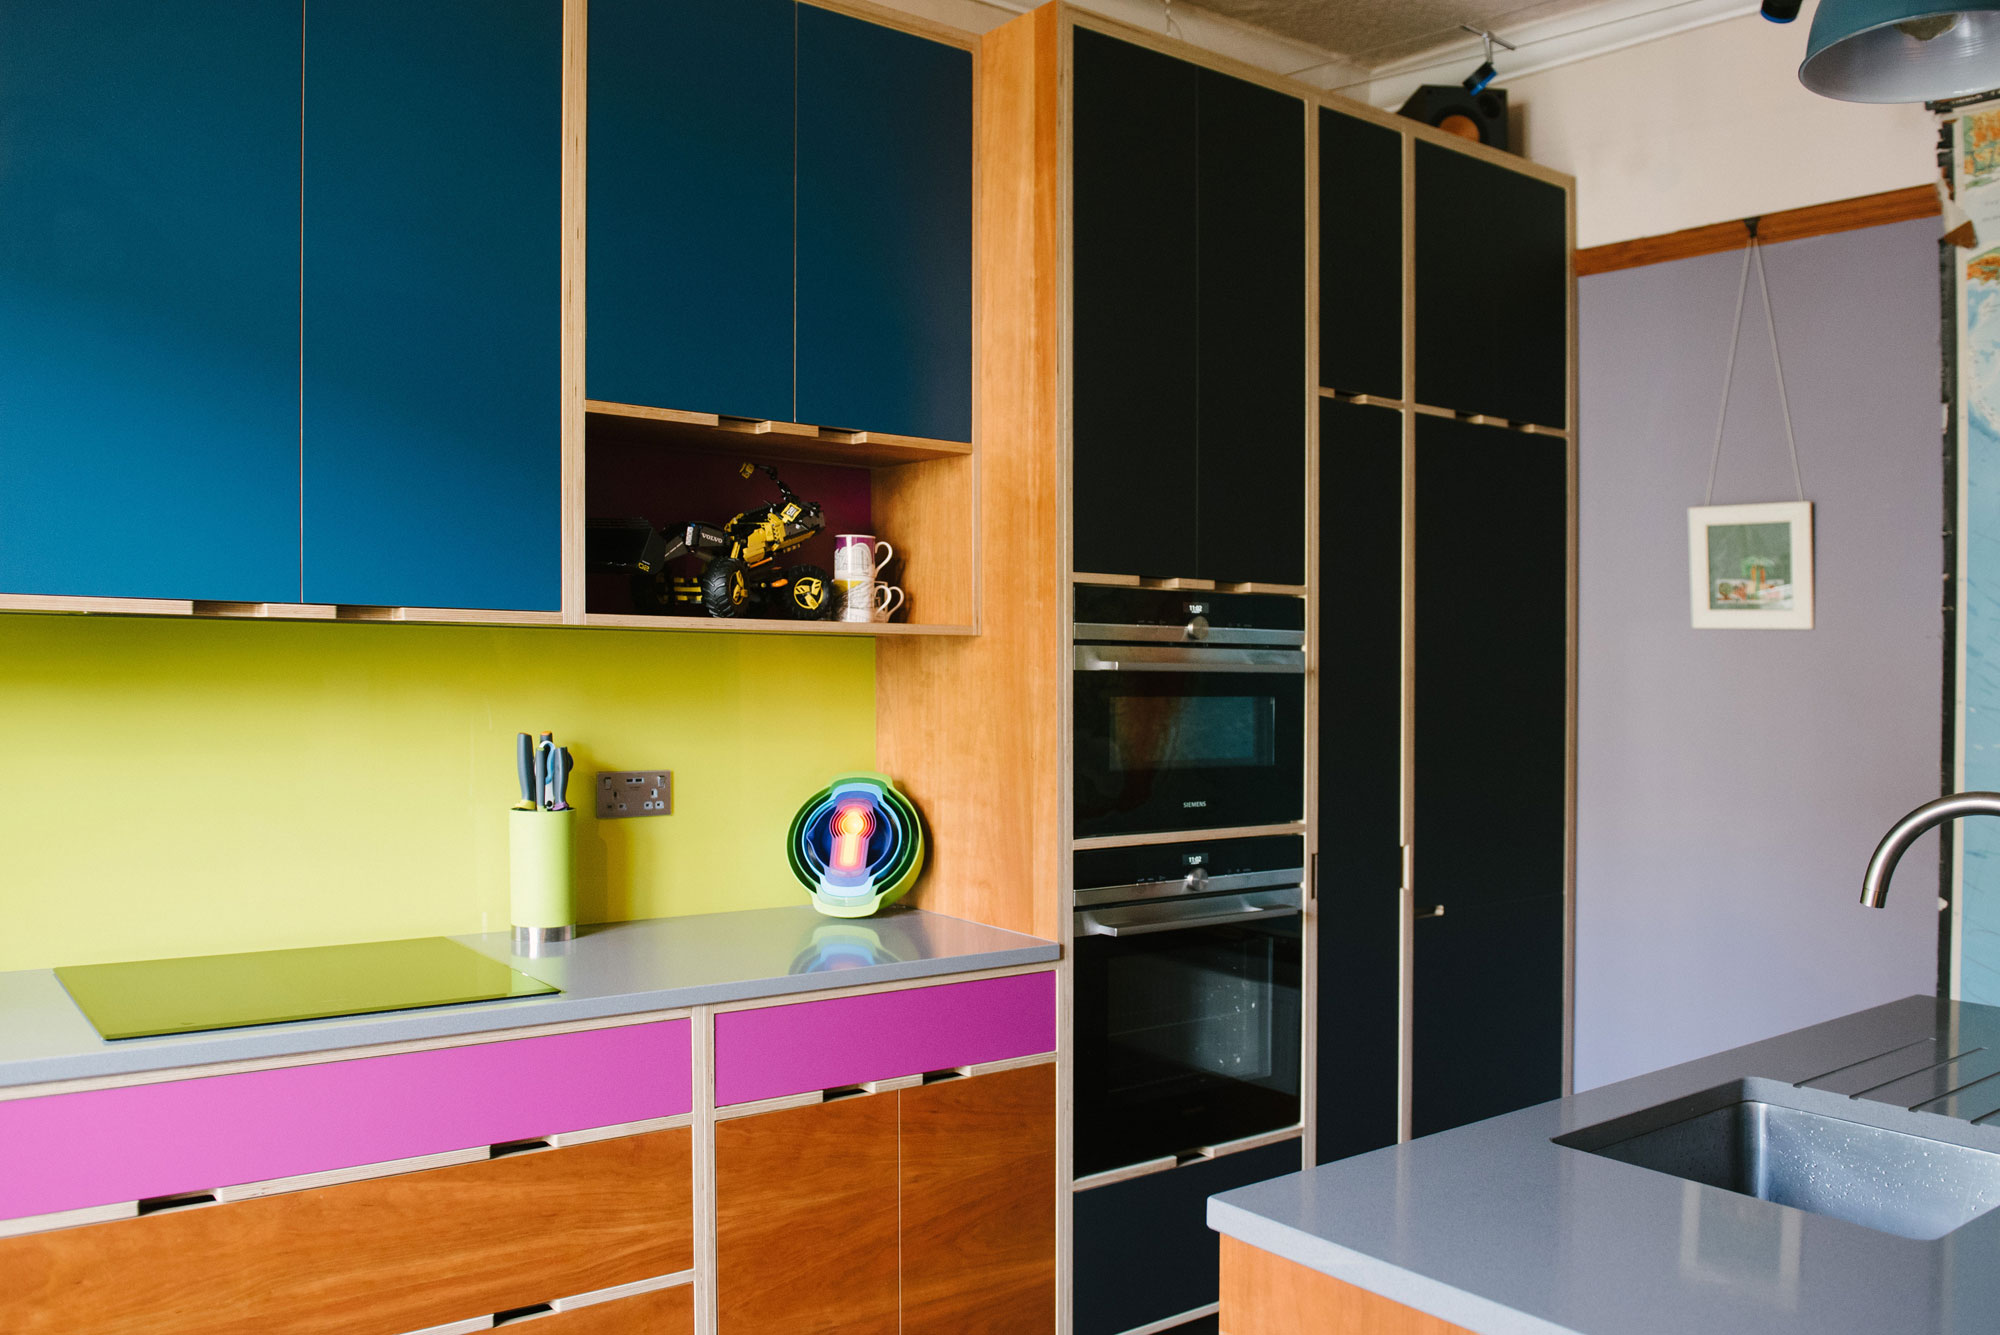 Plywood kitchens in Cherry and Pink